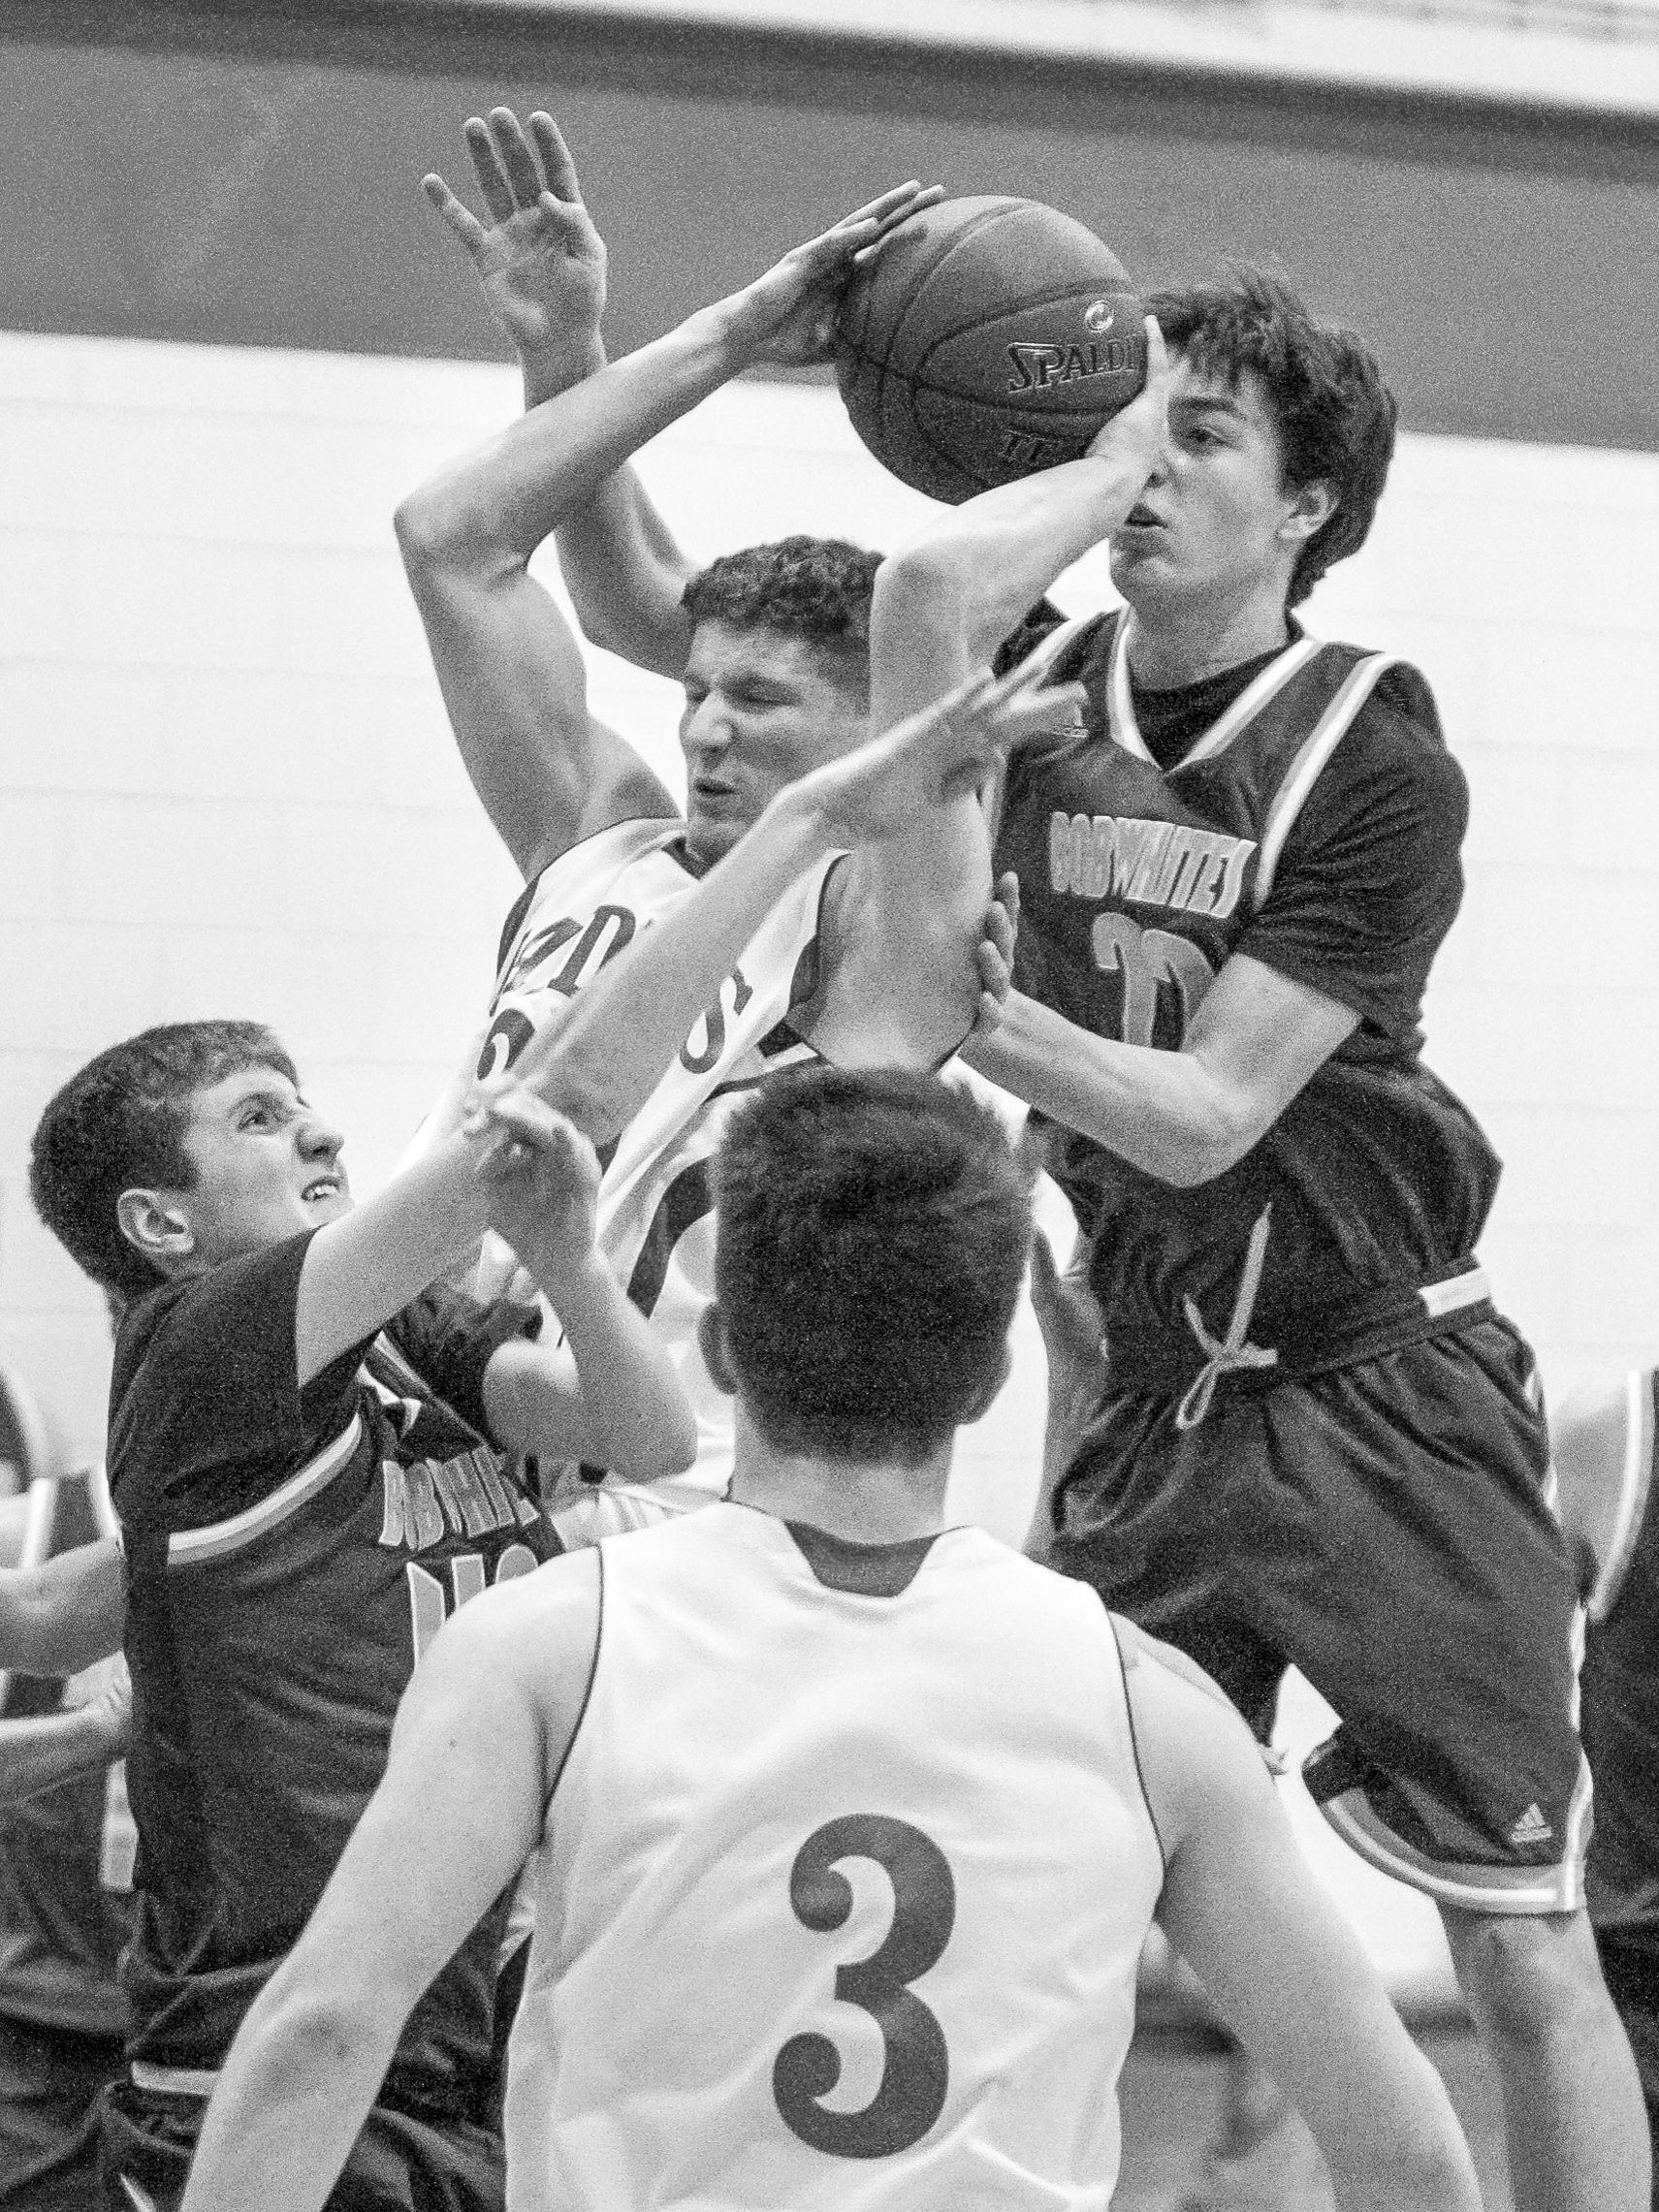 U-32's senior guard Josh Farber secures an offensive rebound through heavy traffic against visiting BFA St. Albans on Tuesday, January 9th 2018.